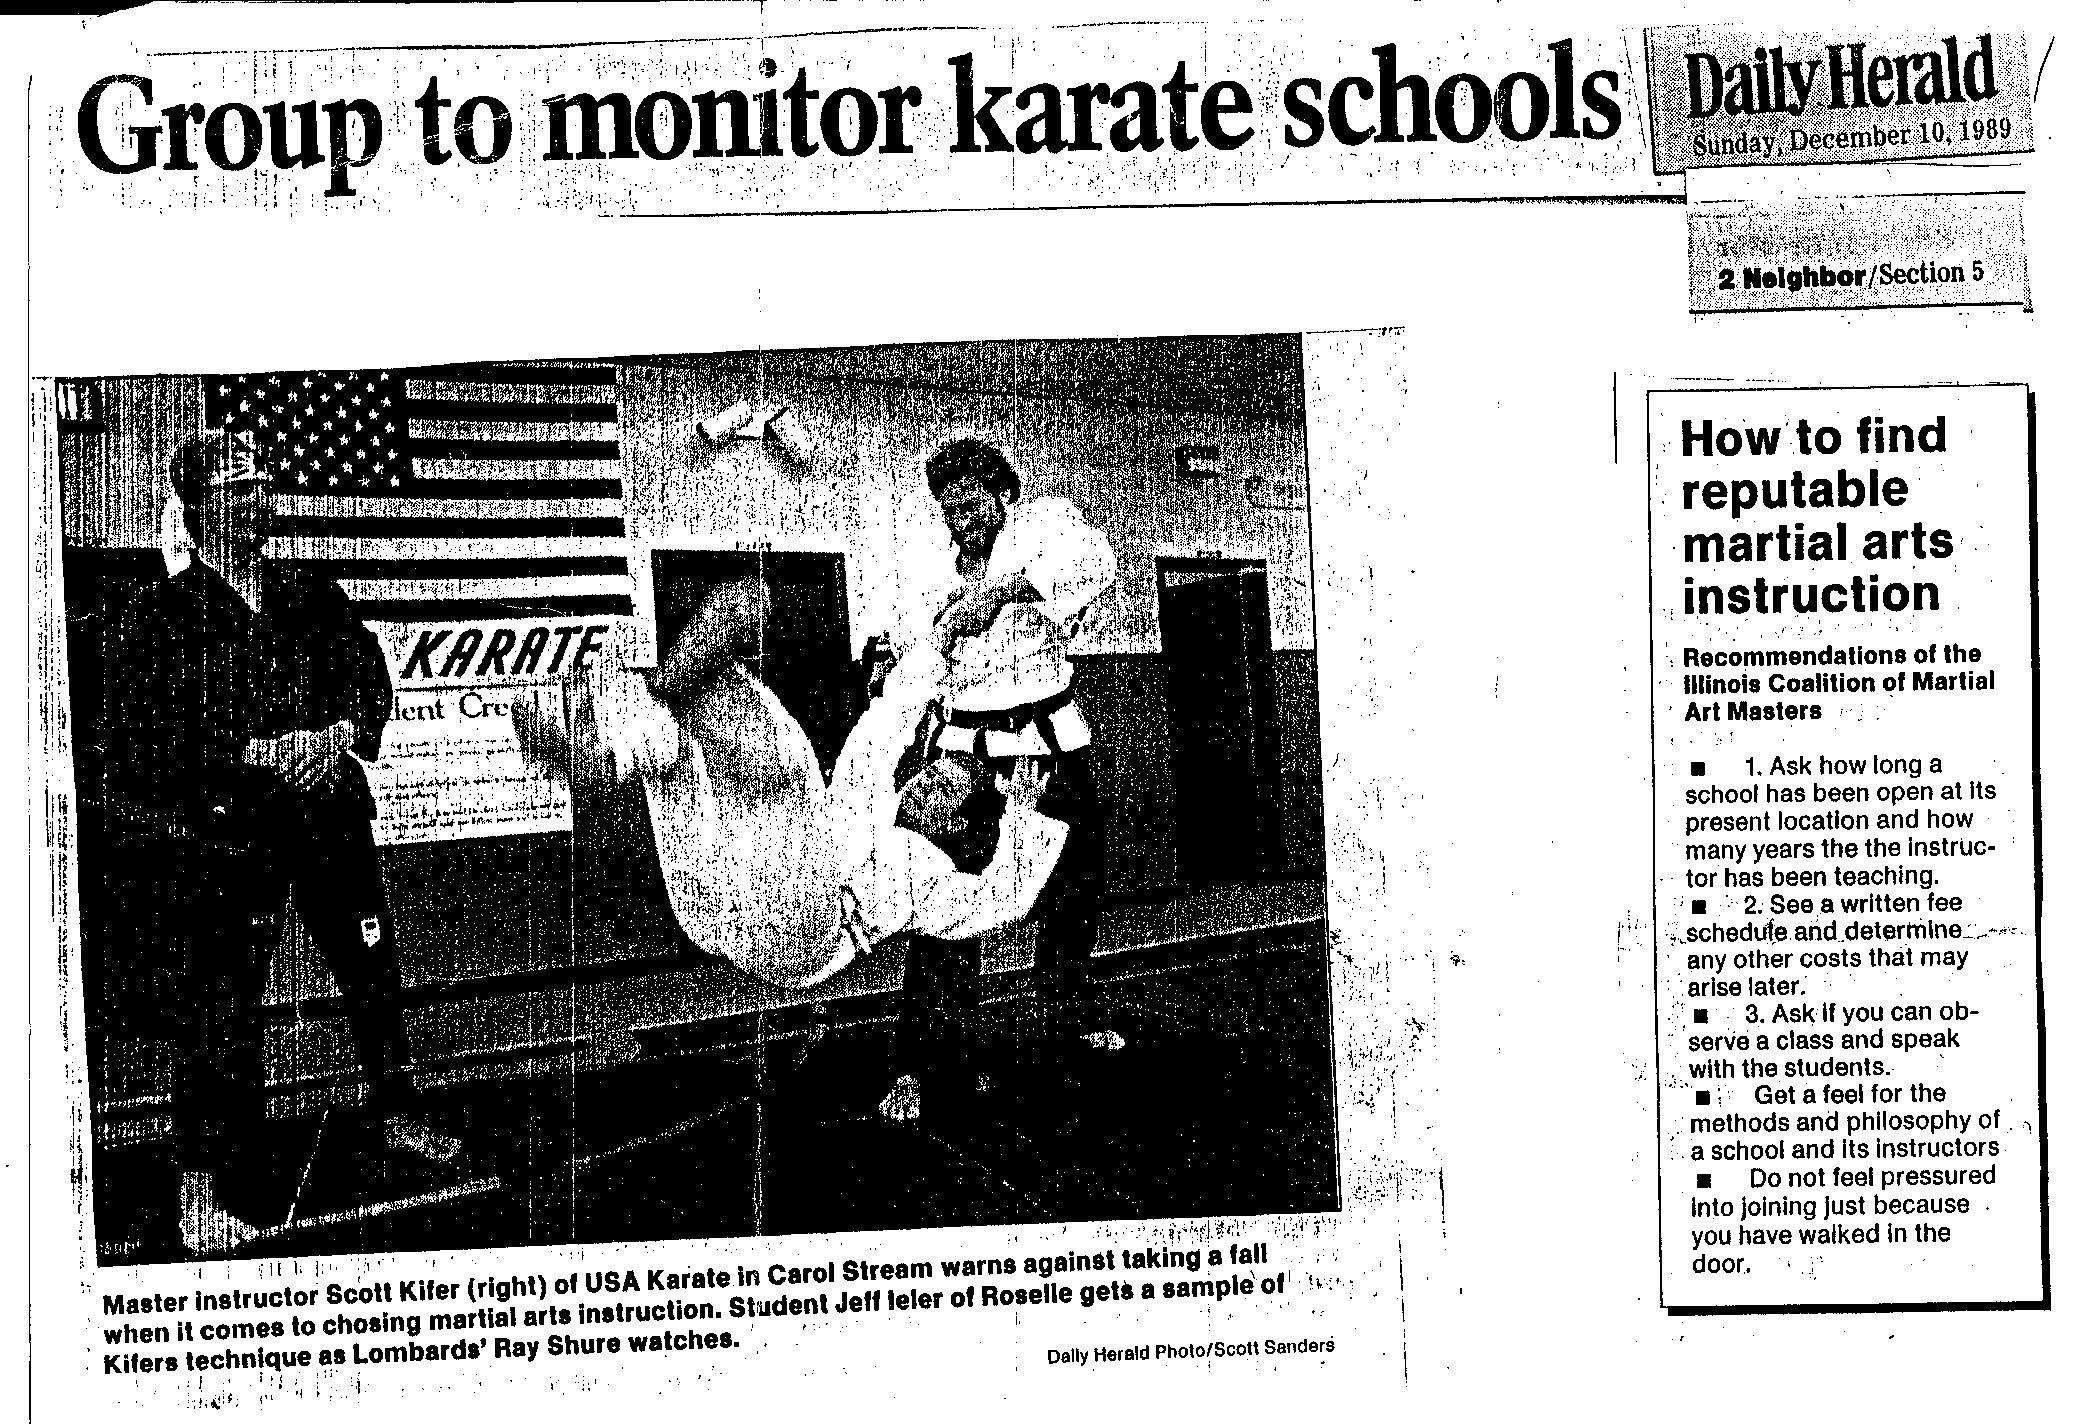 Chicago Daily Herald Group to monitor karate schools.jpg